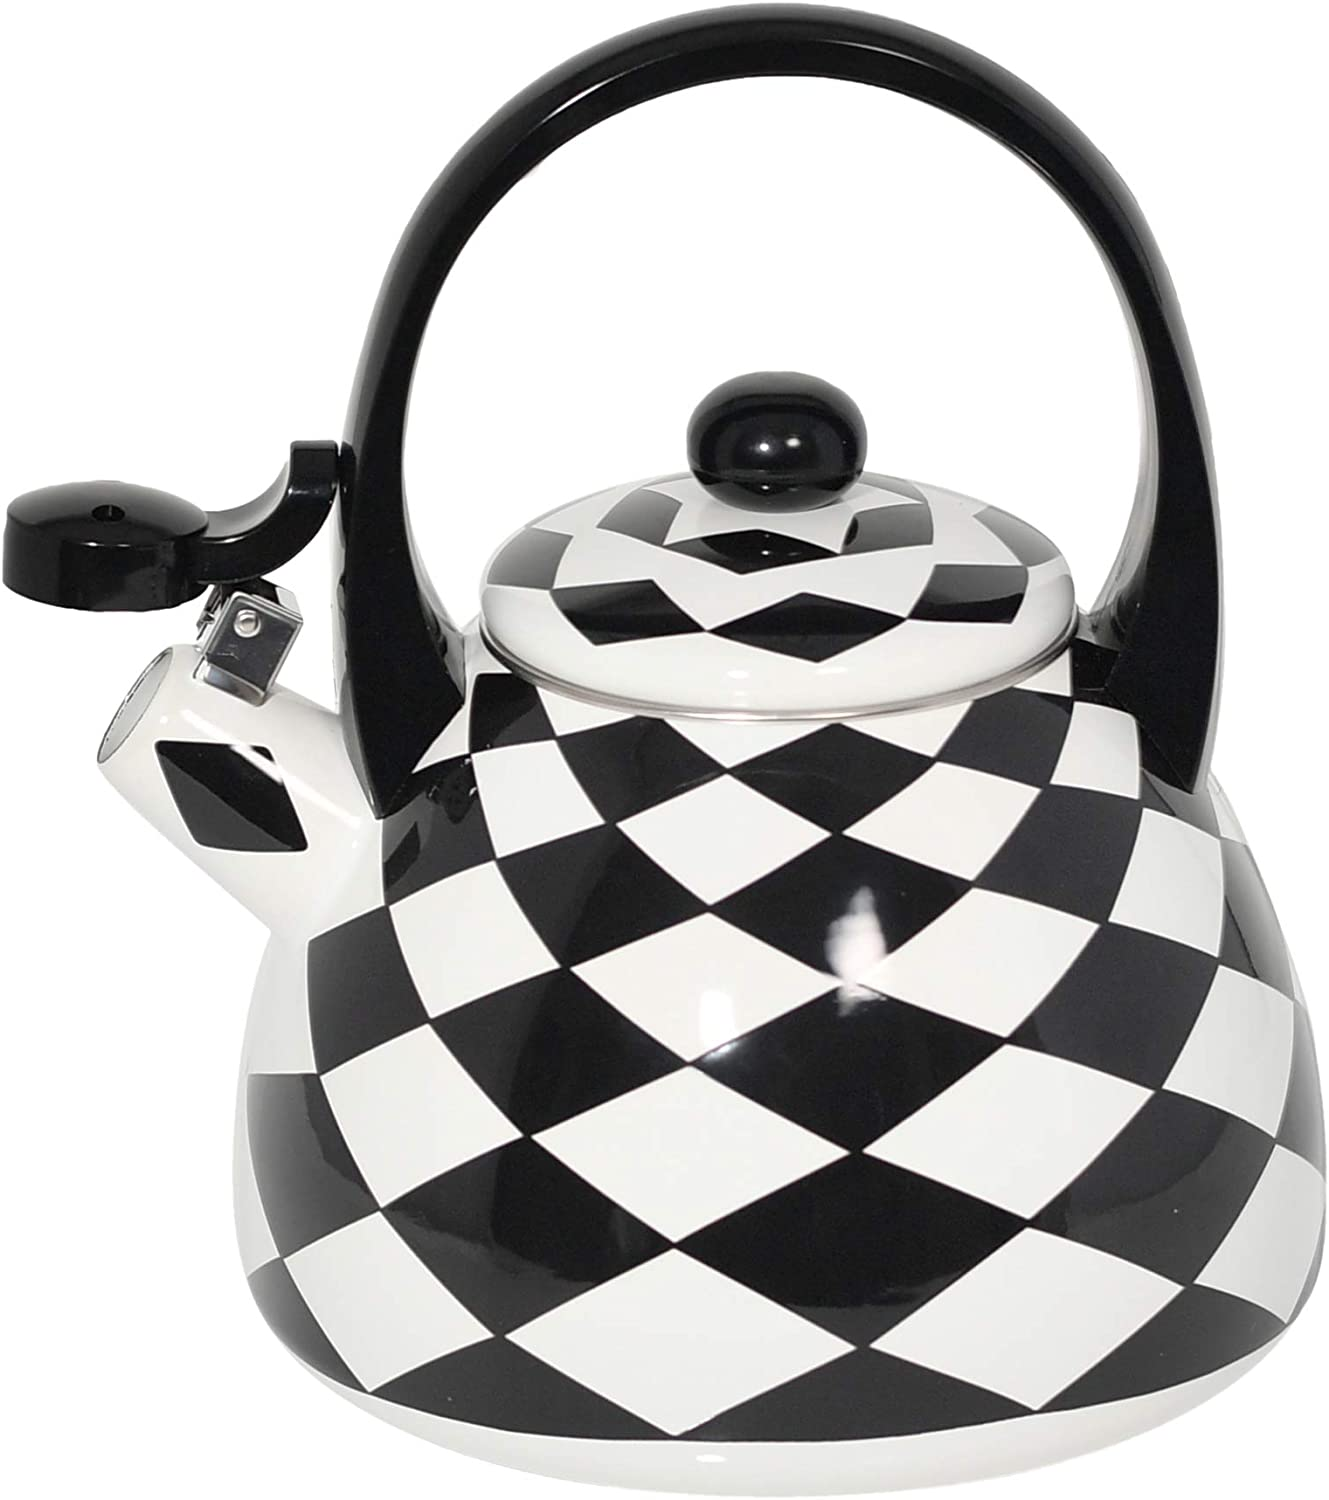 Amazon Com Home X Black Checkered Whistling Tea Kettle Cute Animal Teapot Kitchen Accessories And Decor Dining